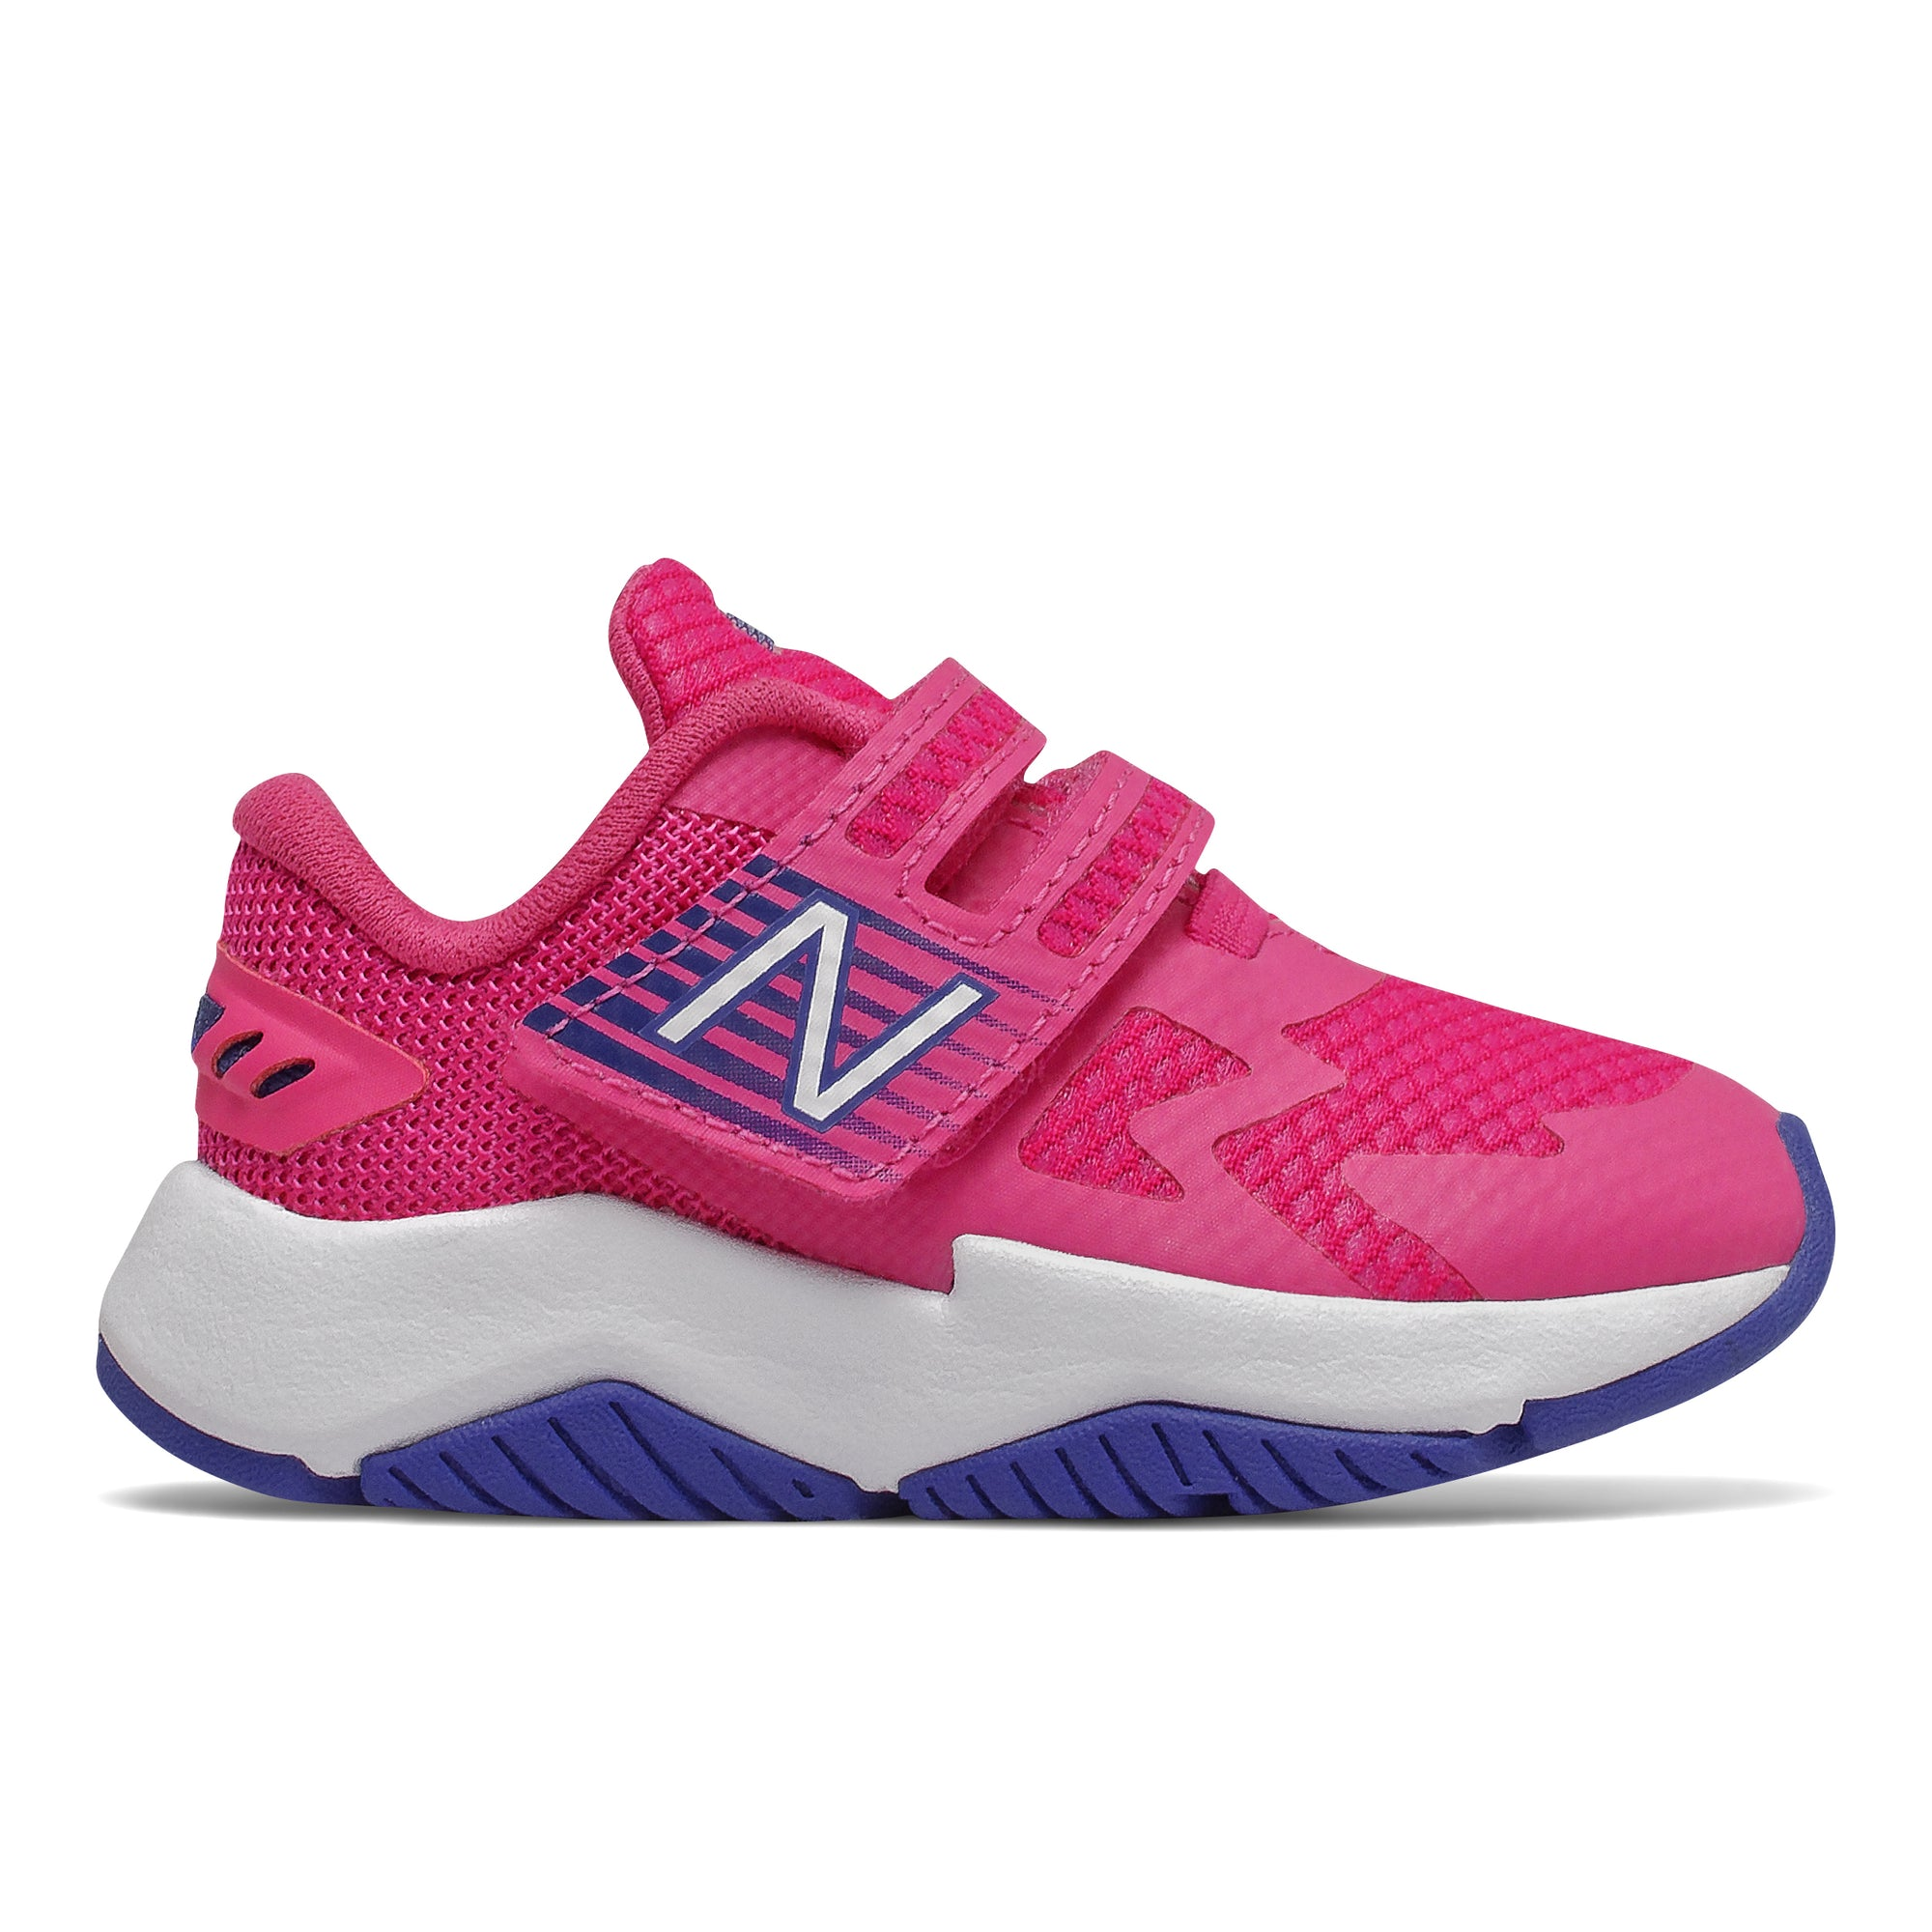 Rave Run - Exuberant Pink / Candy Pink / Marine Blue